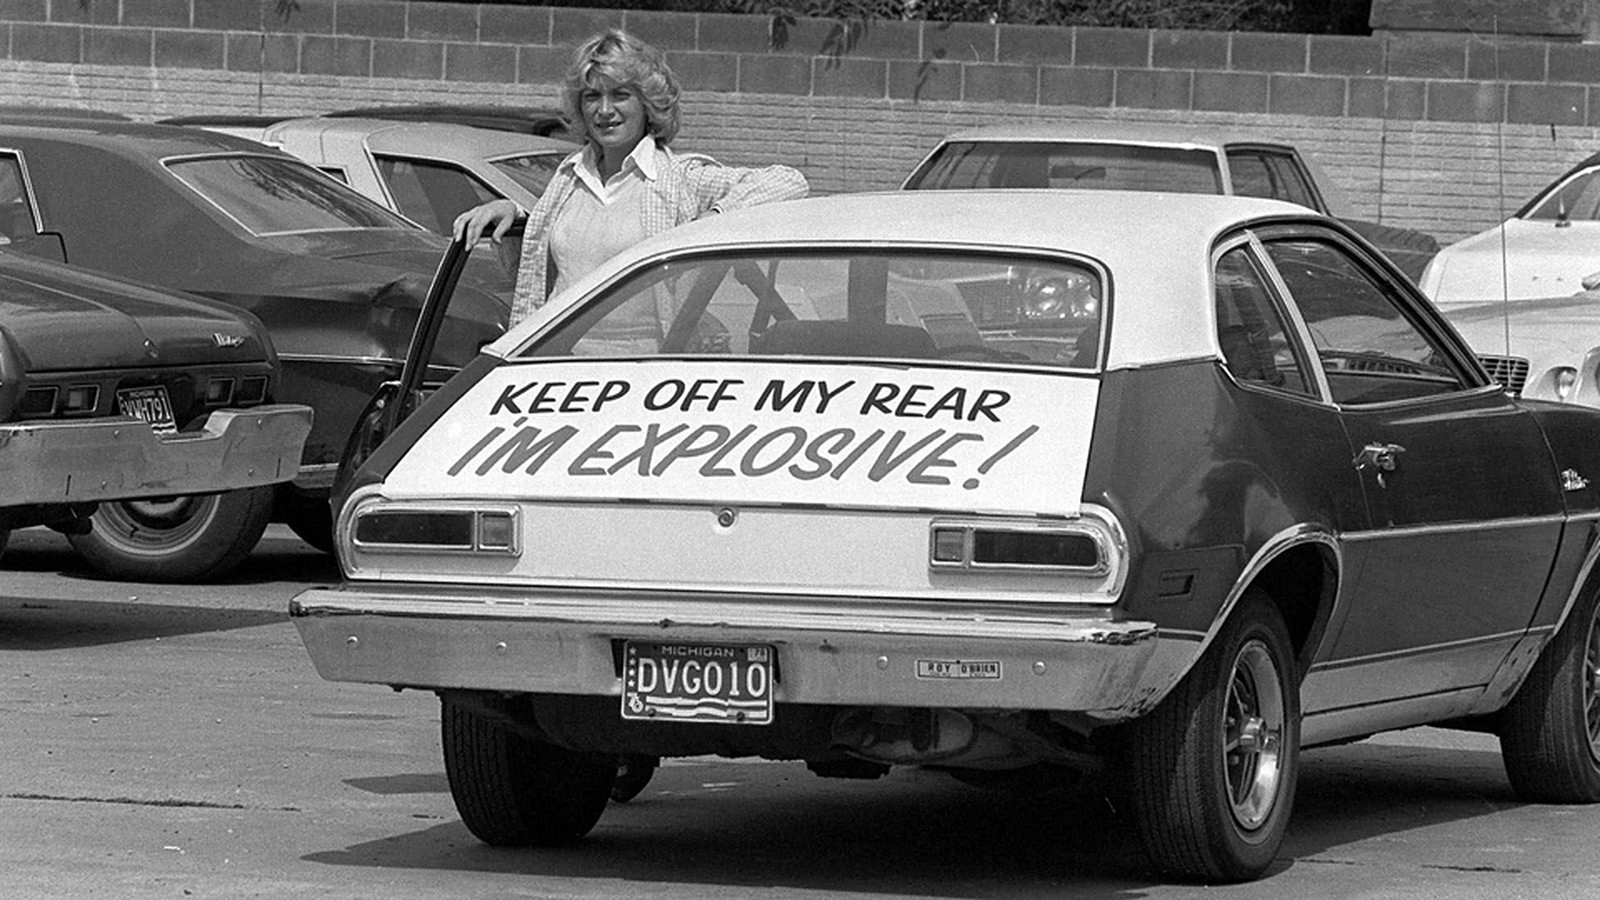 """Woman standing next to Ford Pinto: """"KEEP OFF MY REAR I'M EXPLOSIVE!"""""""